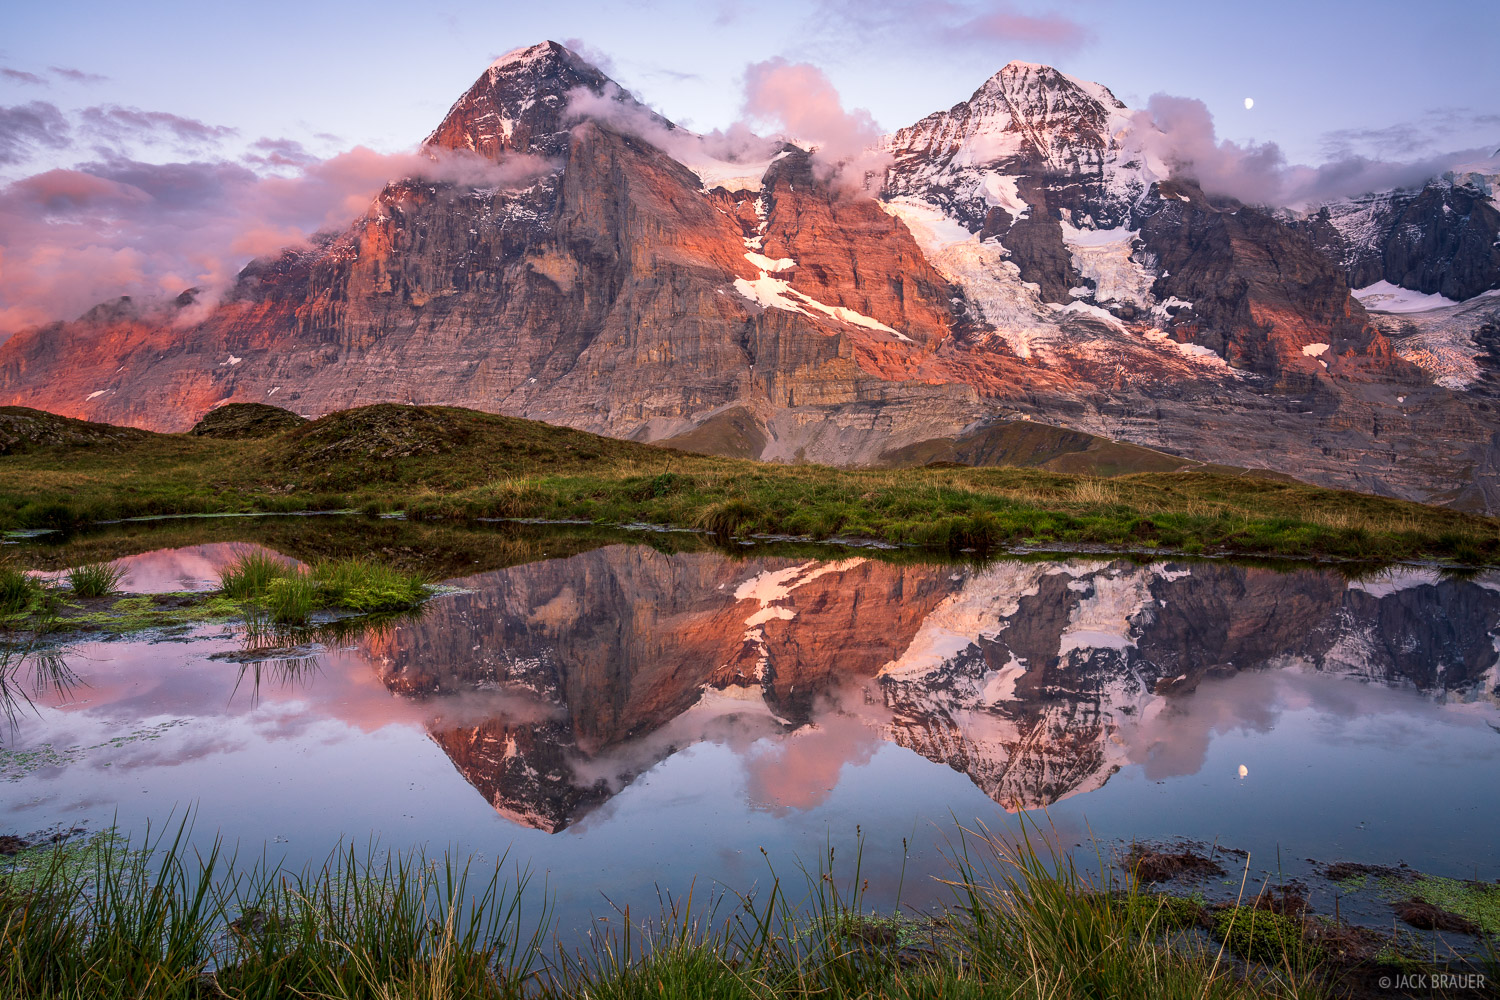 Bernese Alps, Eiger, Kleine Scheidegg, Mönch, Switzerland, reflection, Bernese Oberland, photo